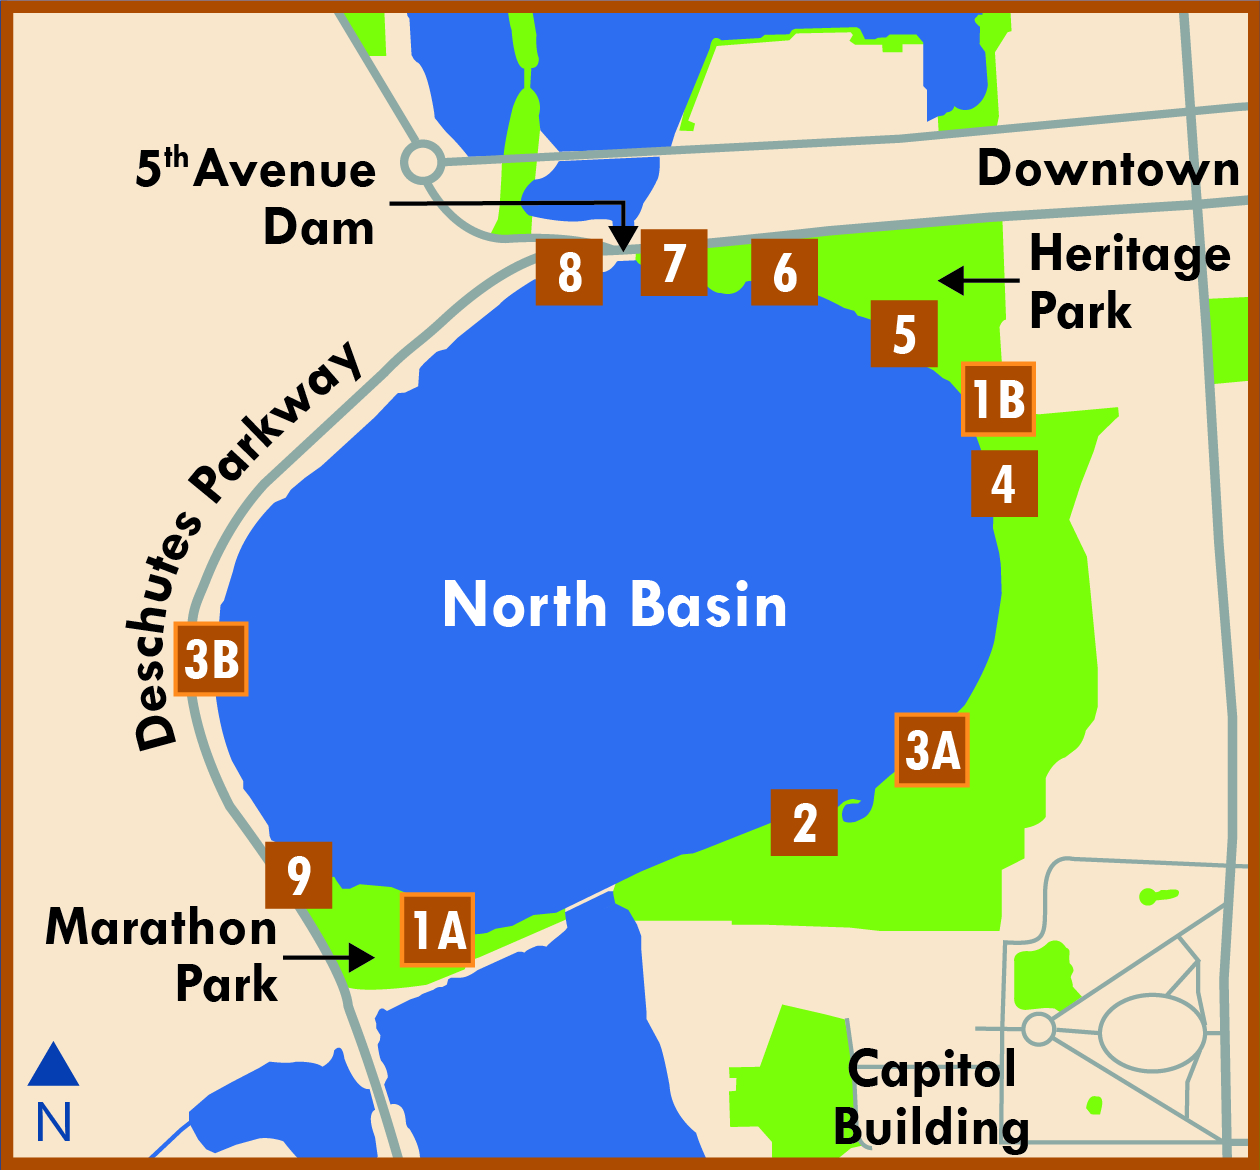 Kiosks are located in 11 locations along all sides of the North Basin along the Heritage Park Trail Look.